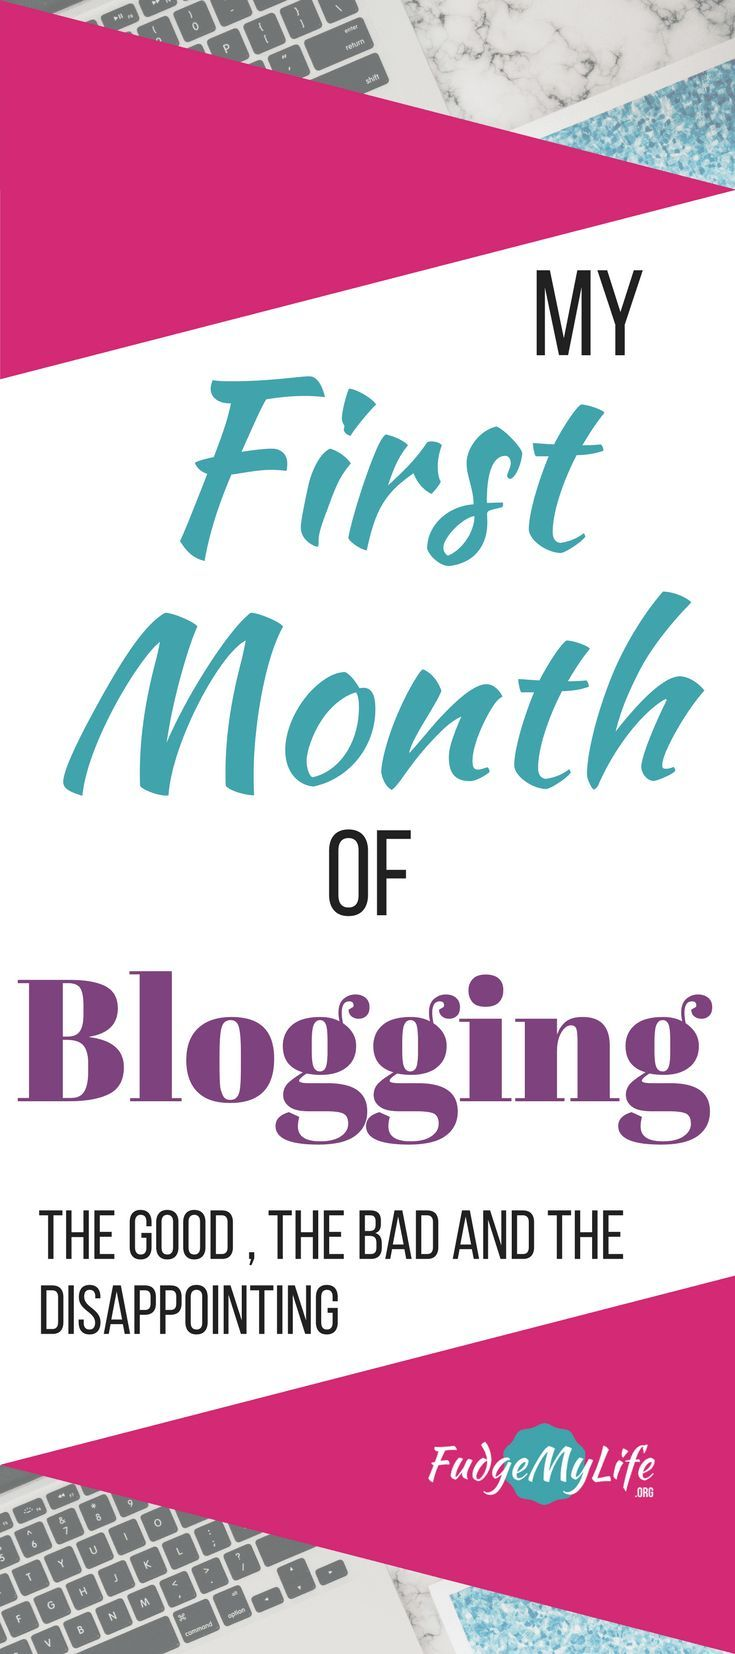 It's been exactly a month since I started my blog. And I have published my first traffic report. This first income report shows what did and didn't work in my first month of blogging. I'm still learning about social media, writing blog posts and so on. I started this blog with no experience, but I will get there. So here is my blogging report of December 2017 until January 2018. - Blog Traffic & Income Report December 2017 (My First Month of Blogging)   Start a Blog, Blogging Income…